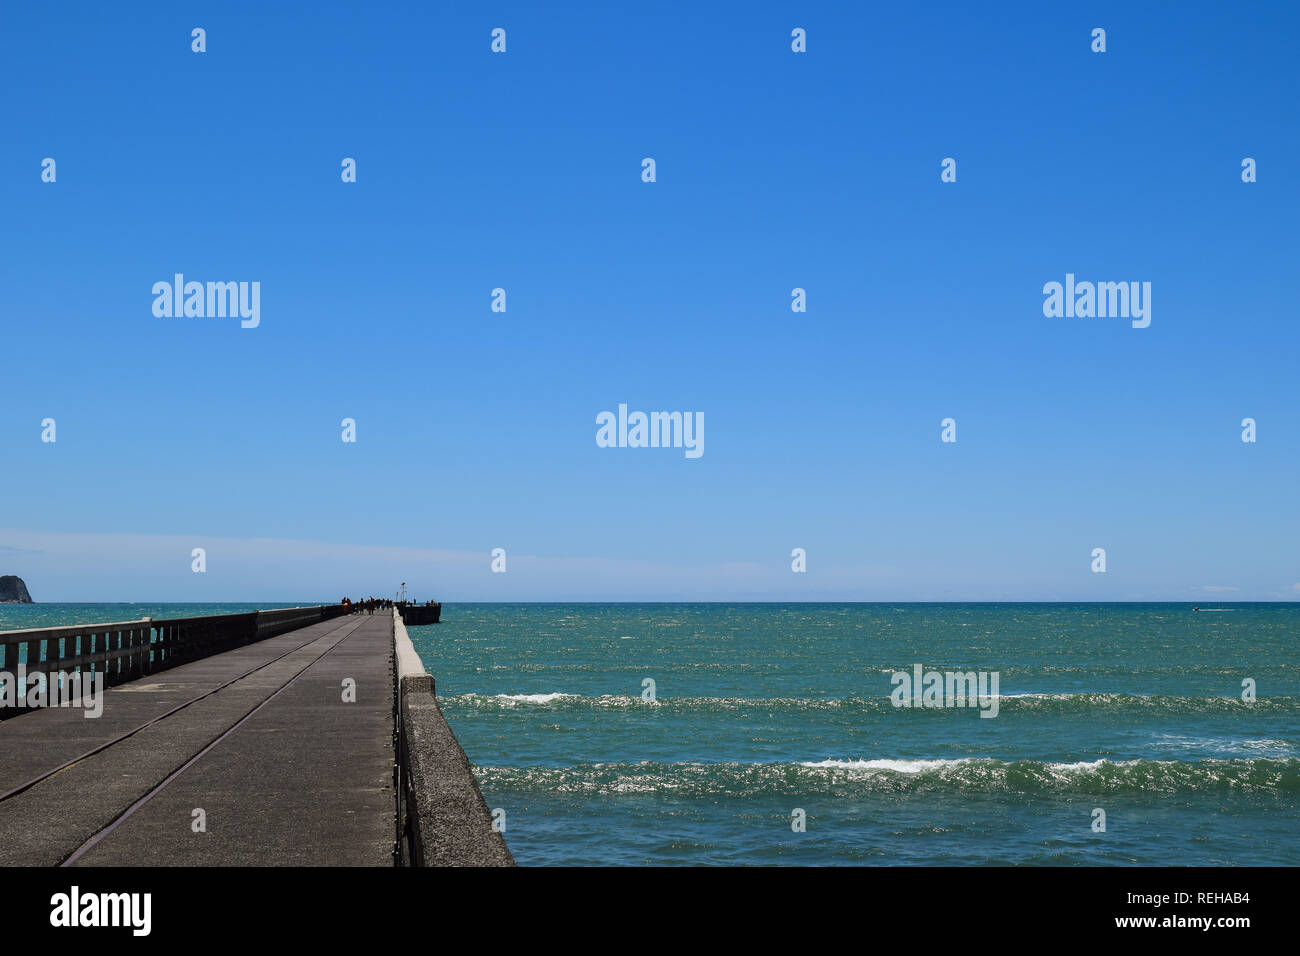 The length of the pier is unknown when looking from the shore in Tolaga Bay, New Zealand - Stock Image